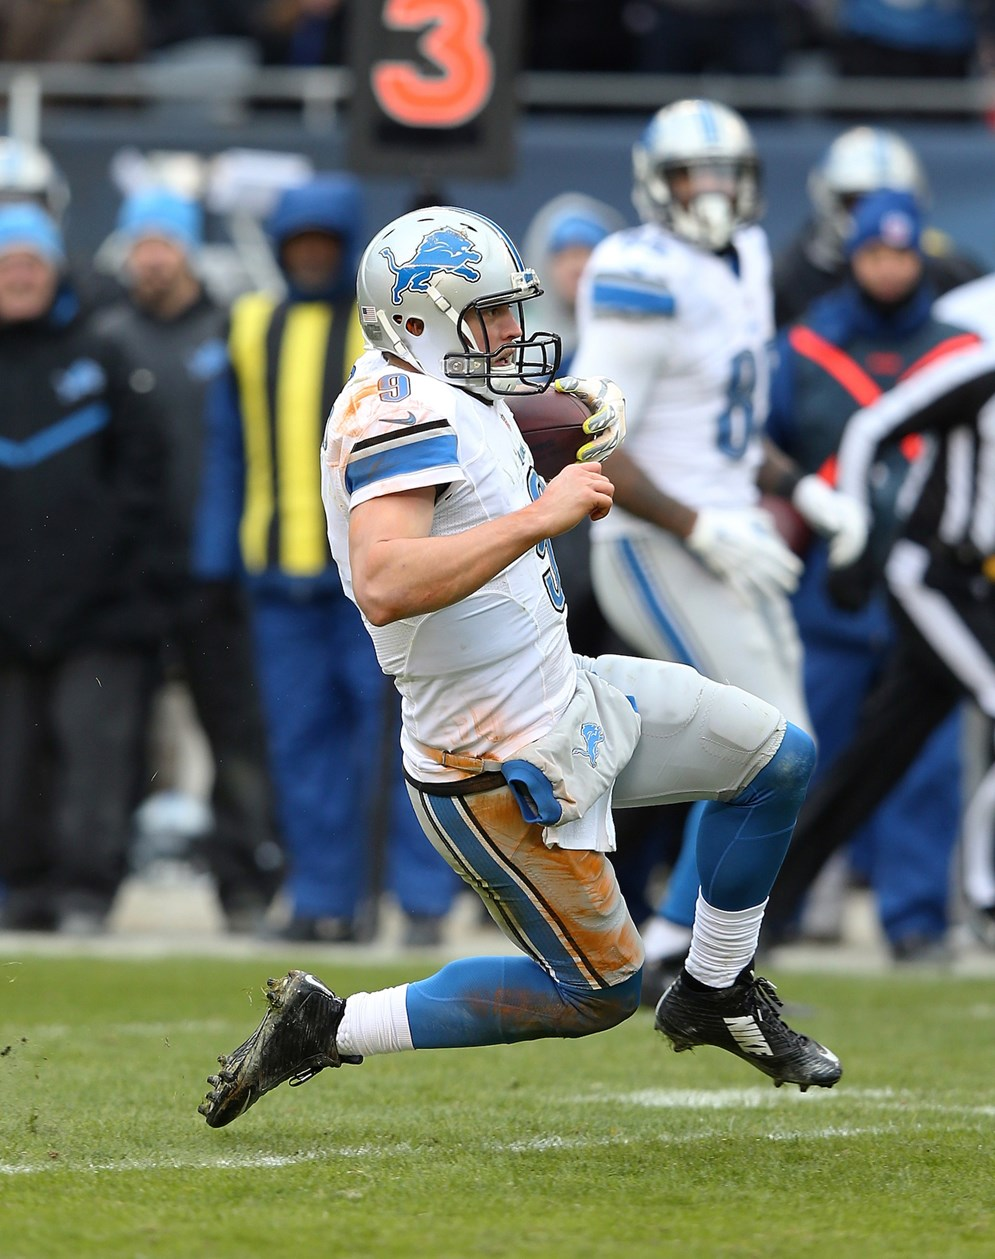 Lions quarterback Matthew Stafford slides safely in a 2015 game against the Bears. NFL officials in 2016 will make sure that once a runner begins a feet-first slide before contact is imminent, defenders cannot make any forcible contact and must treat the sliding runner as they would any runner who is down by contact. (Paul Spinelli via AP)